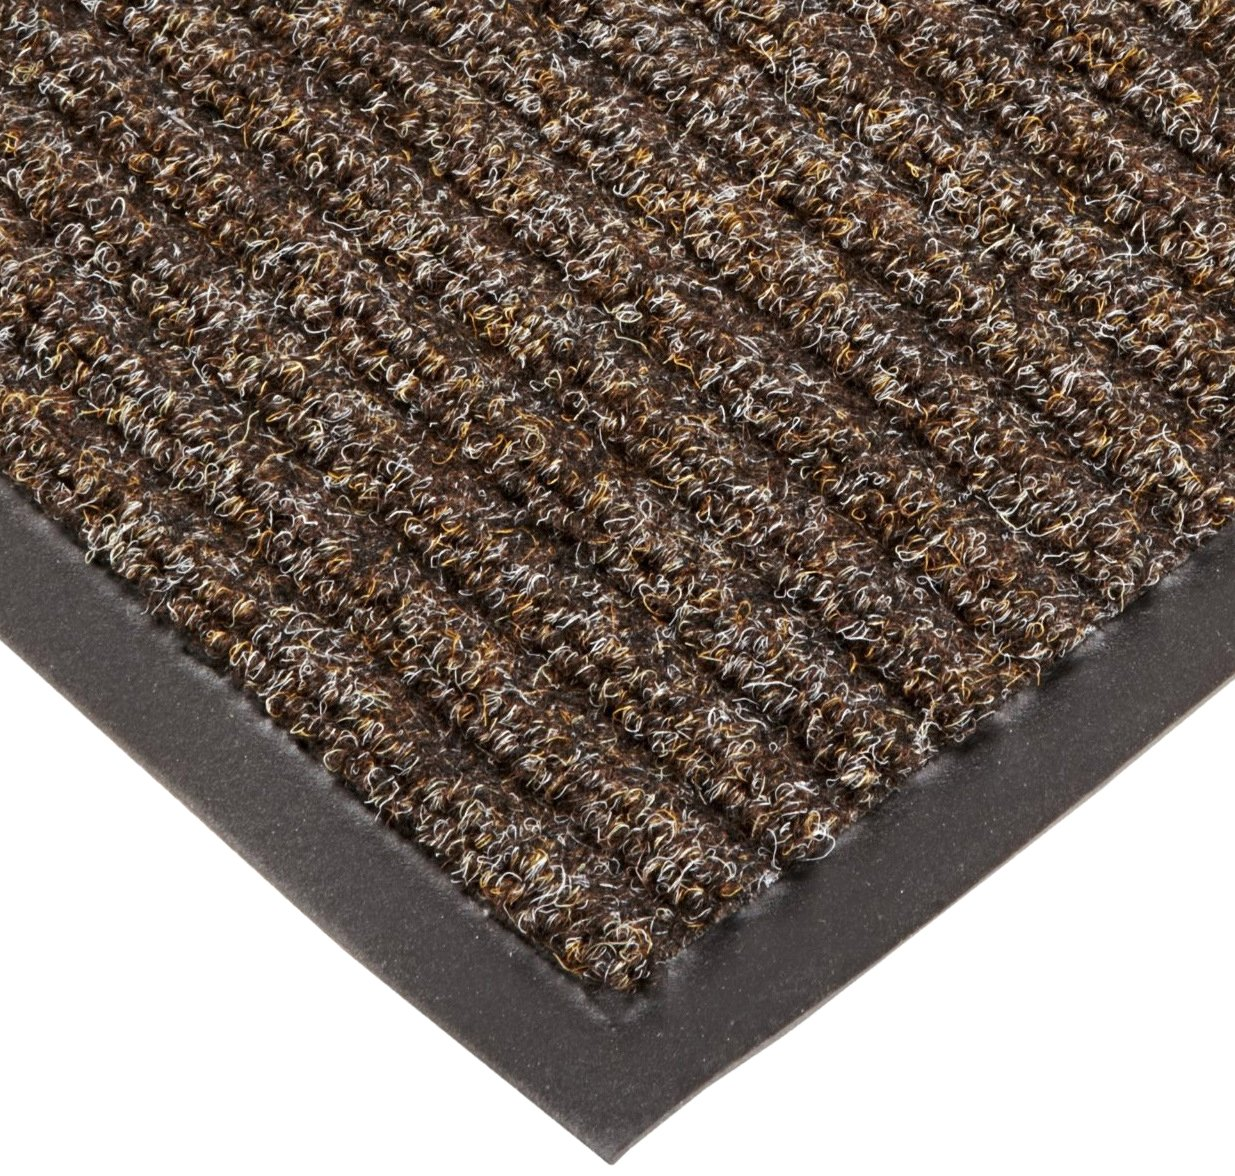 NoTrax T39 Bristol Ridge Scraper Carpet Mat, for Wet and Dry Areas, 3' Width x 5' Length x 3/8 Thickness, Coffee Superior Manufacturing Group Inc T39S0035BR